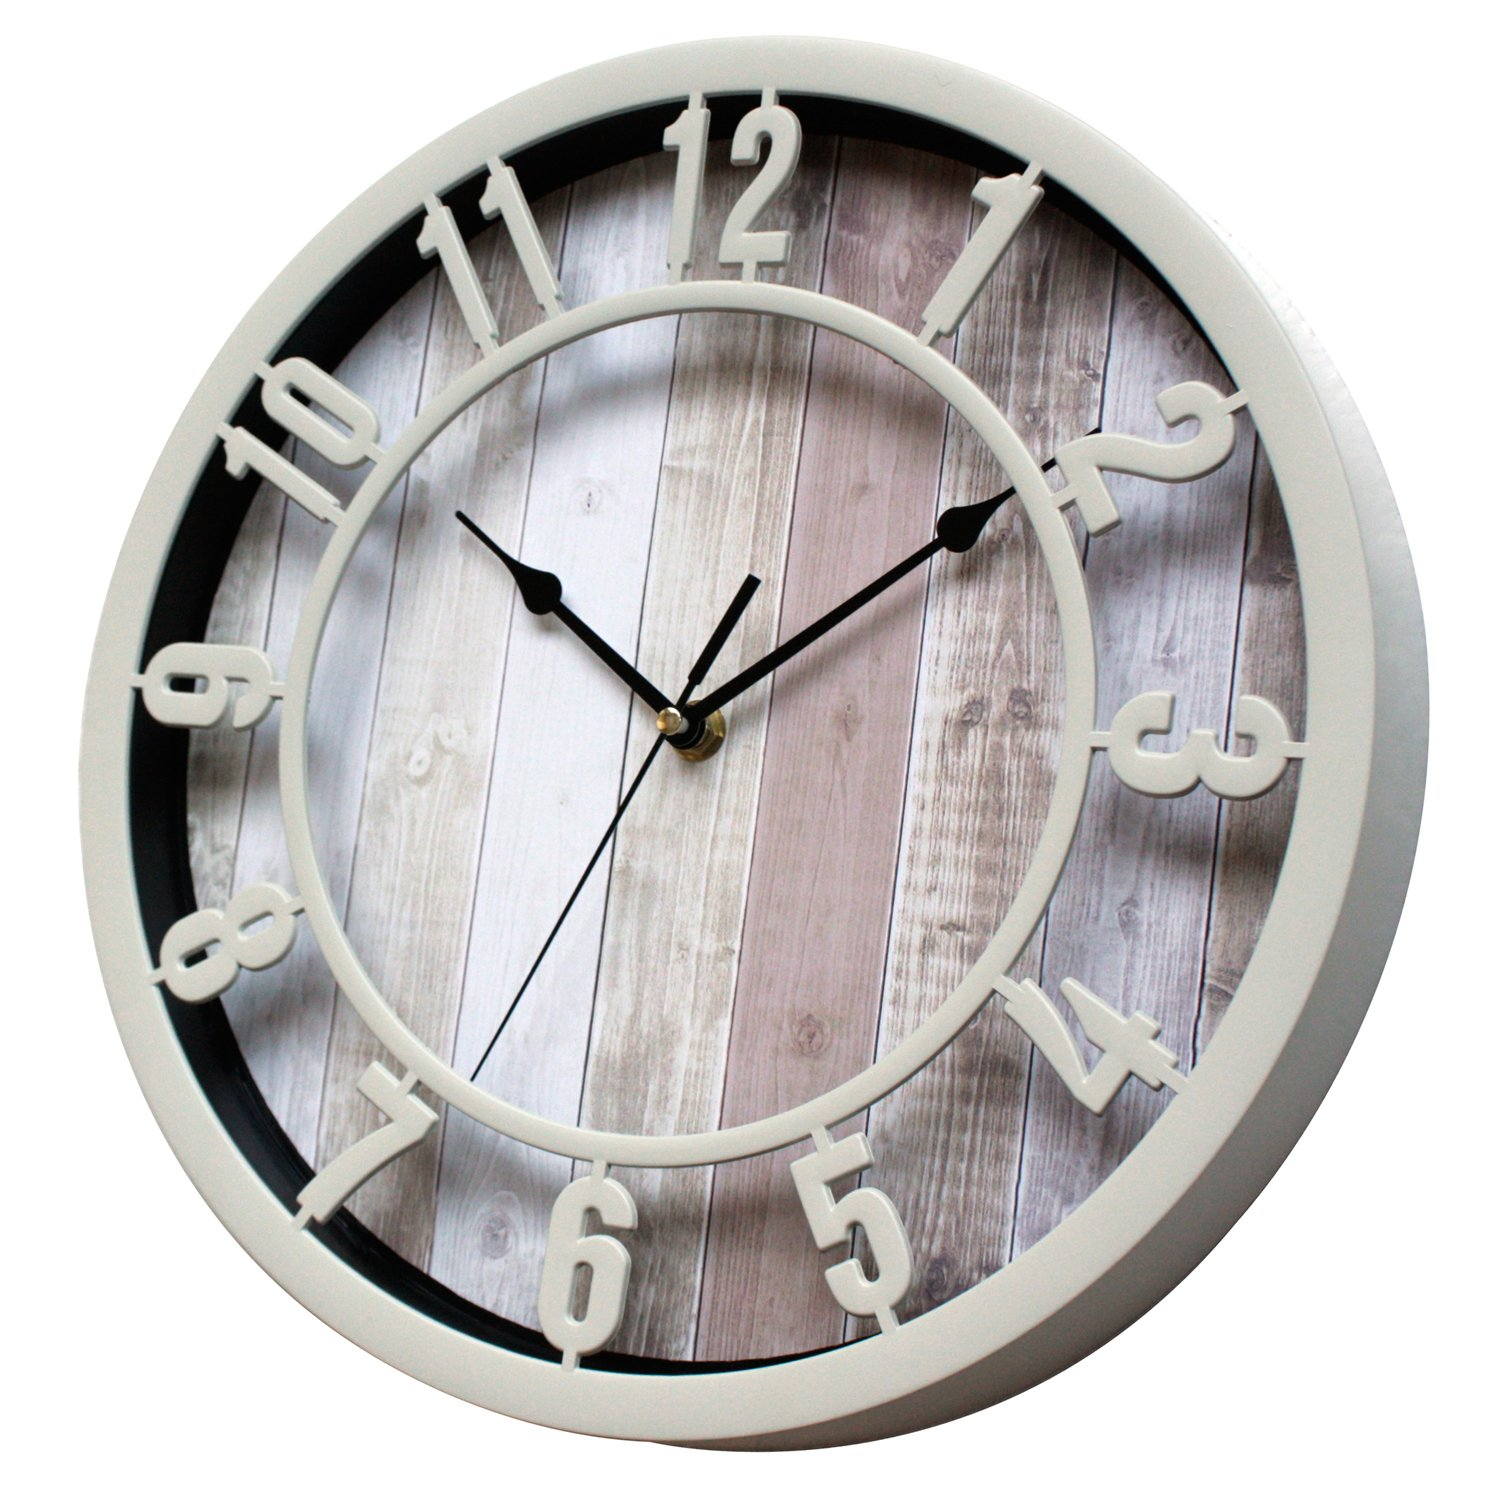 Sunbright 12 Inch Rustic Decorative Noiseless Wall Clock Silent Non-Ticking for Home, Office, School, Cream by Sunbright